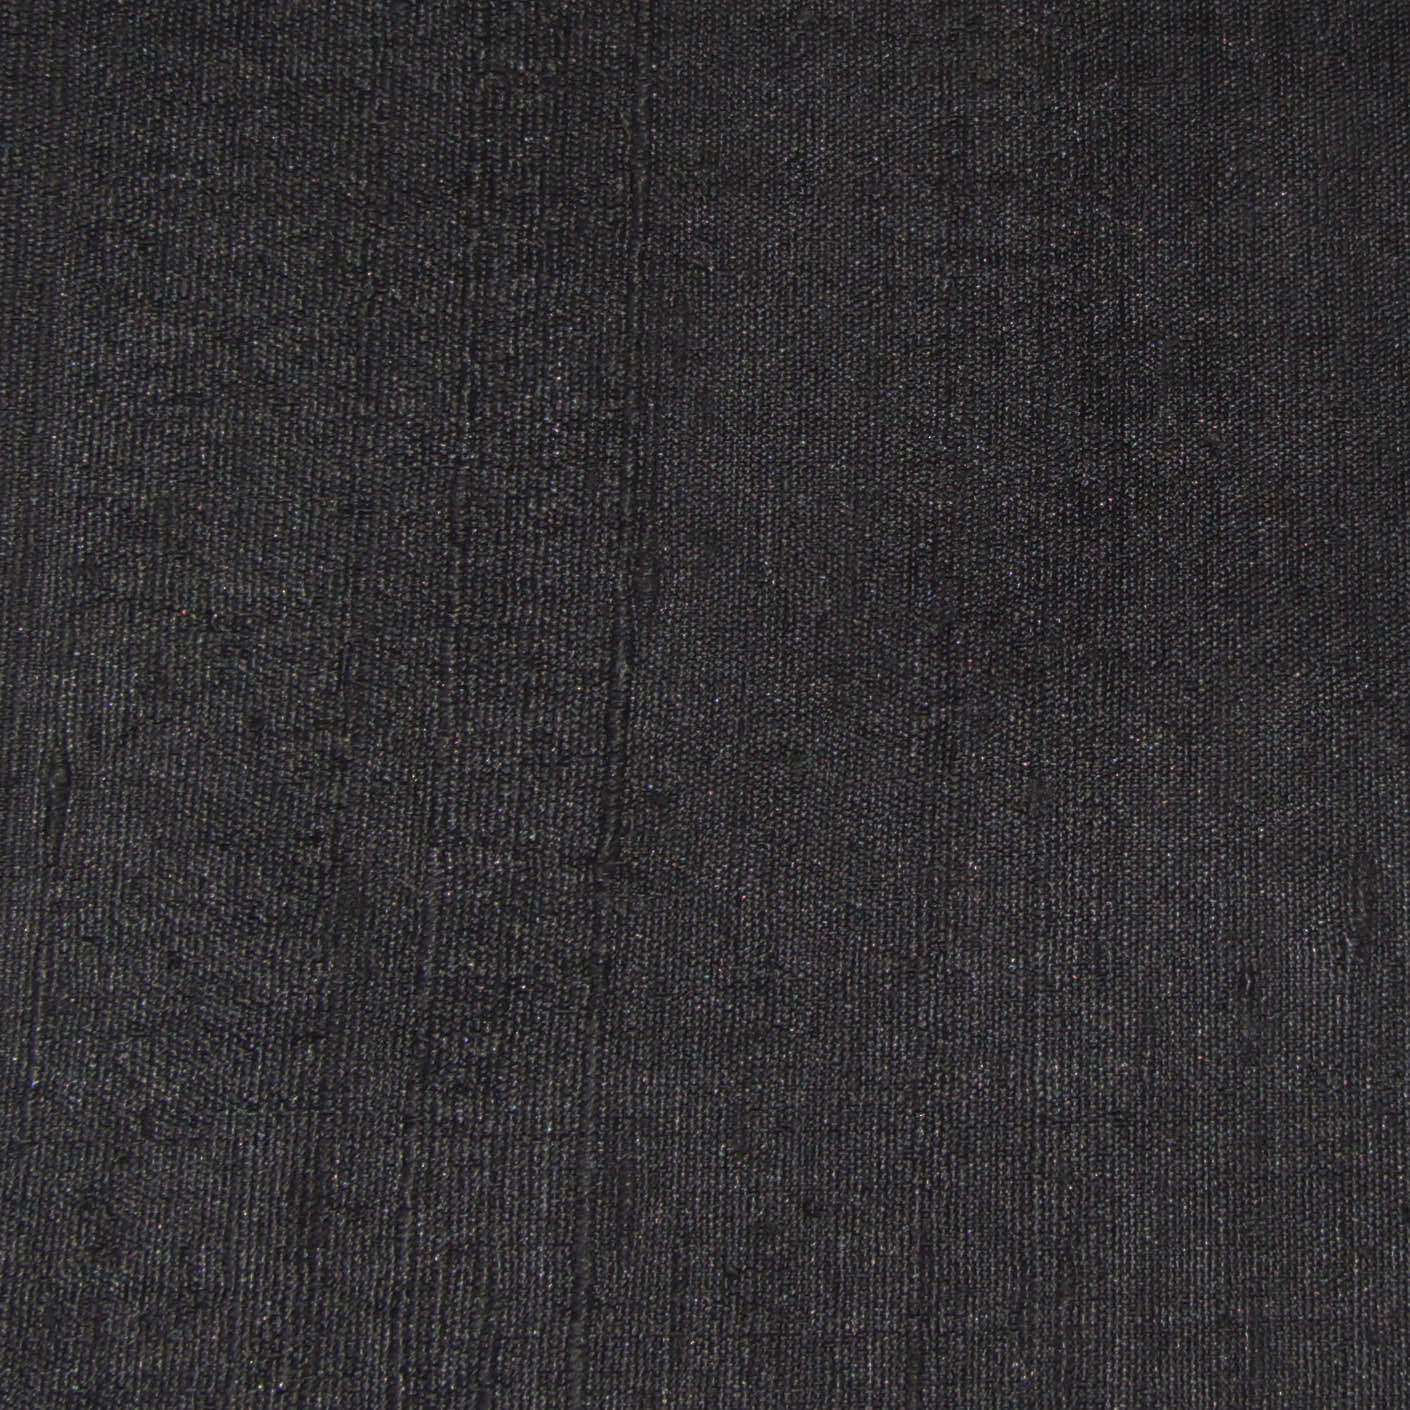 Black Raw Silk